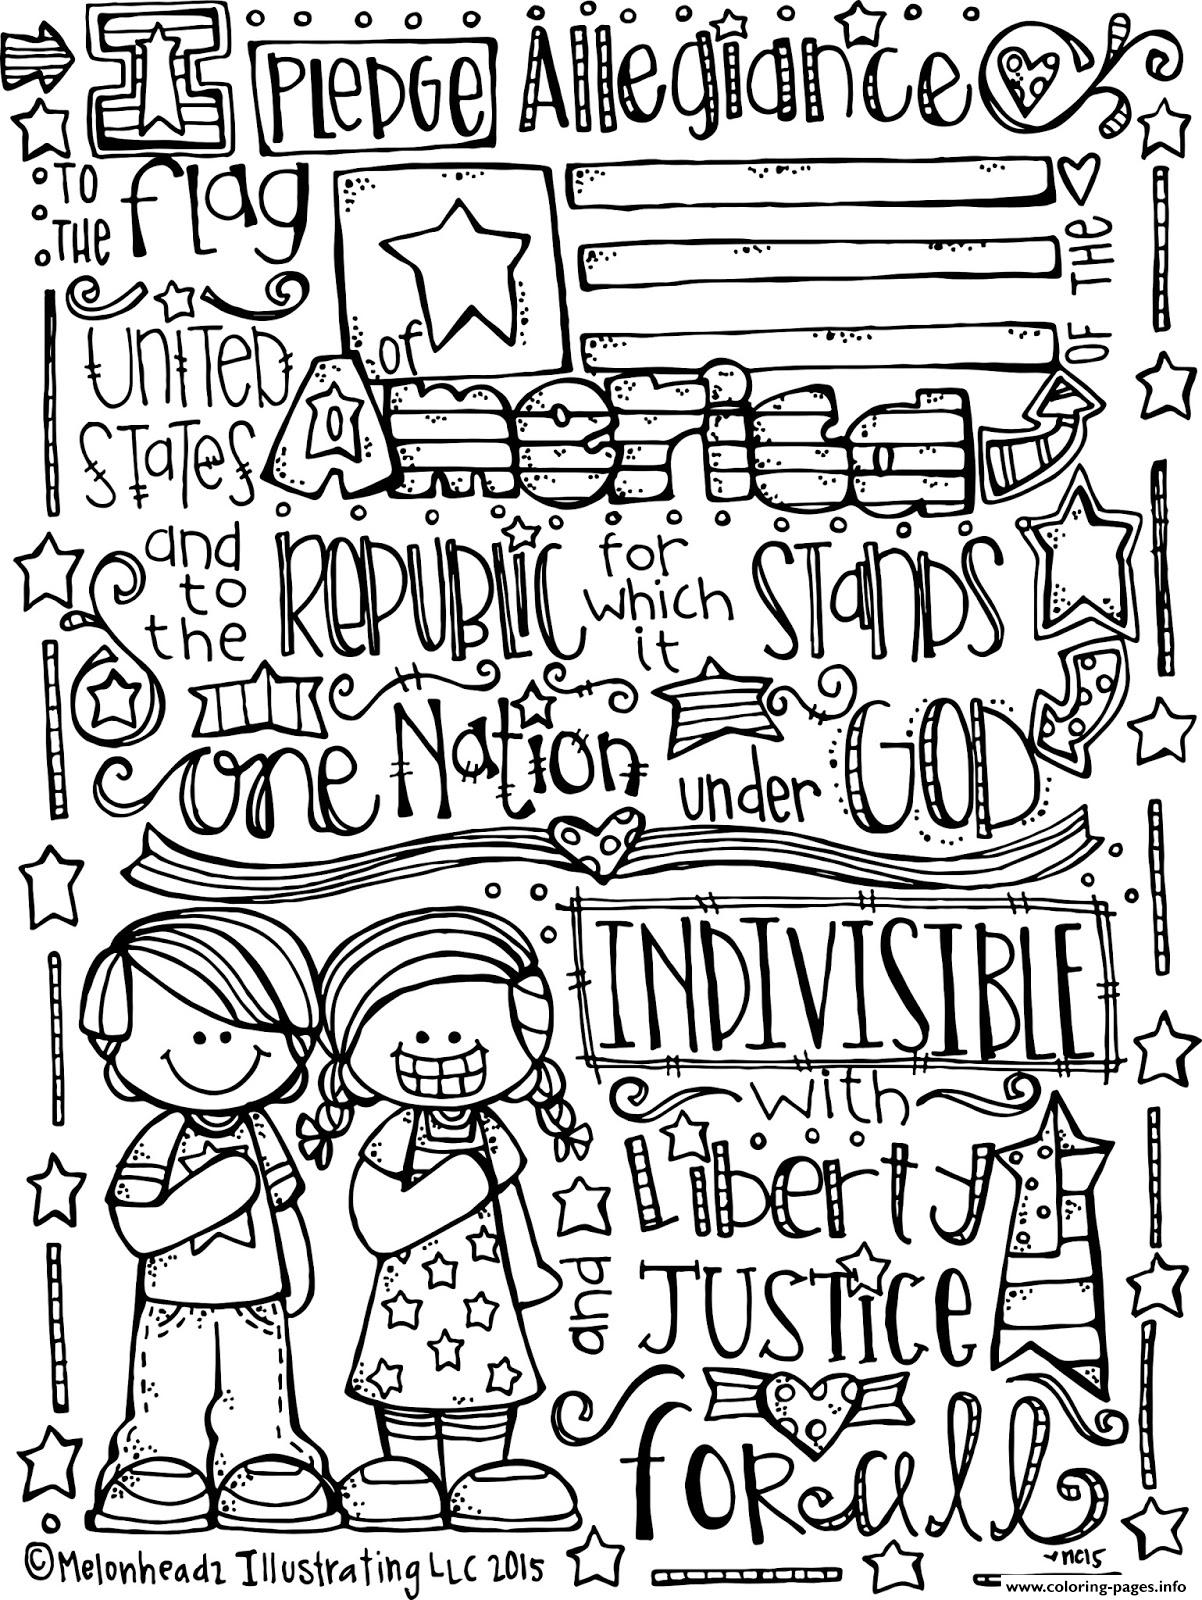 Pledge Of Allegiance Melonheadz Illustrating Llc Bw